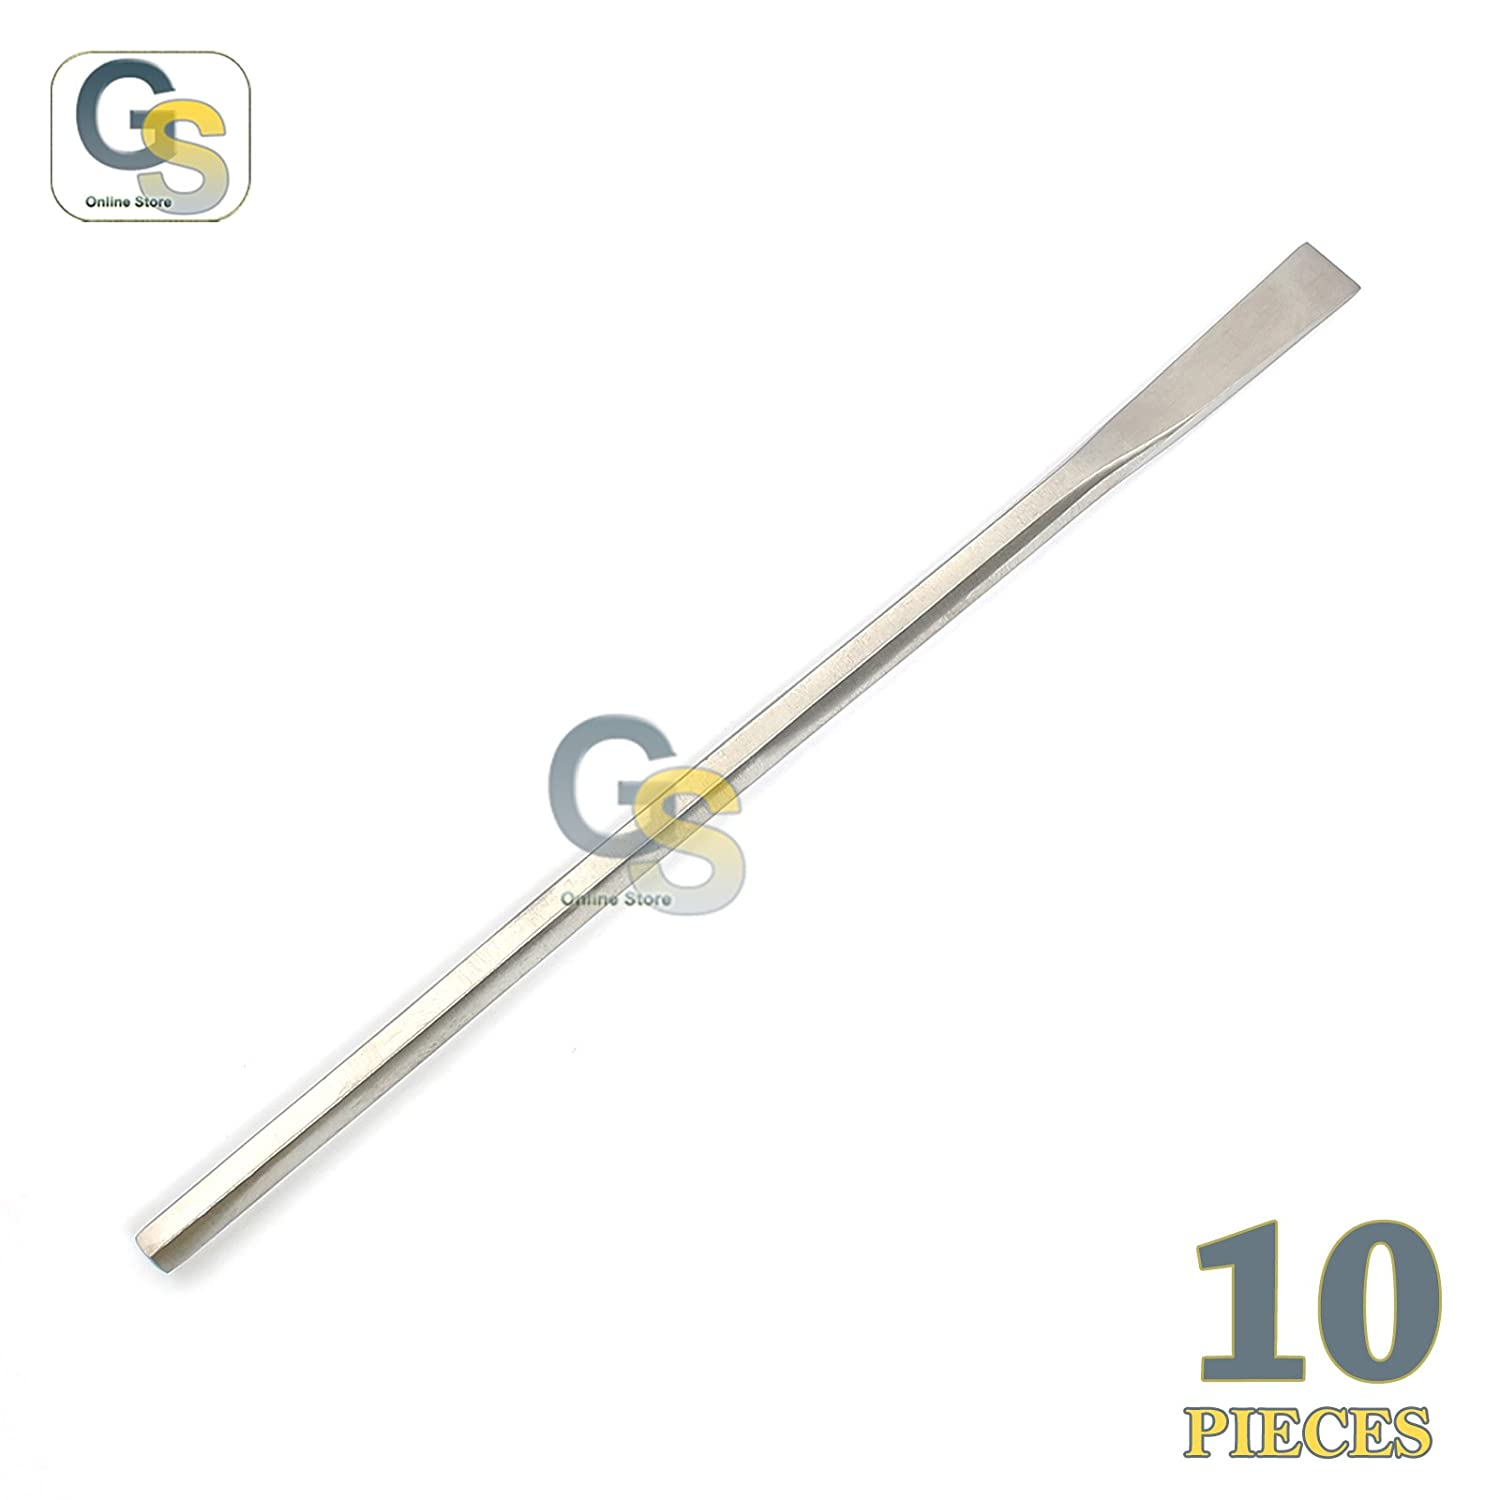 G.S 10 PCS Sheehan Straight Osteotome 2MM Hexagon Handle 16CM Dental Instrument Best Quality